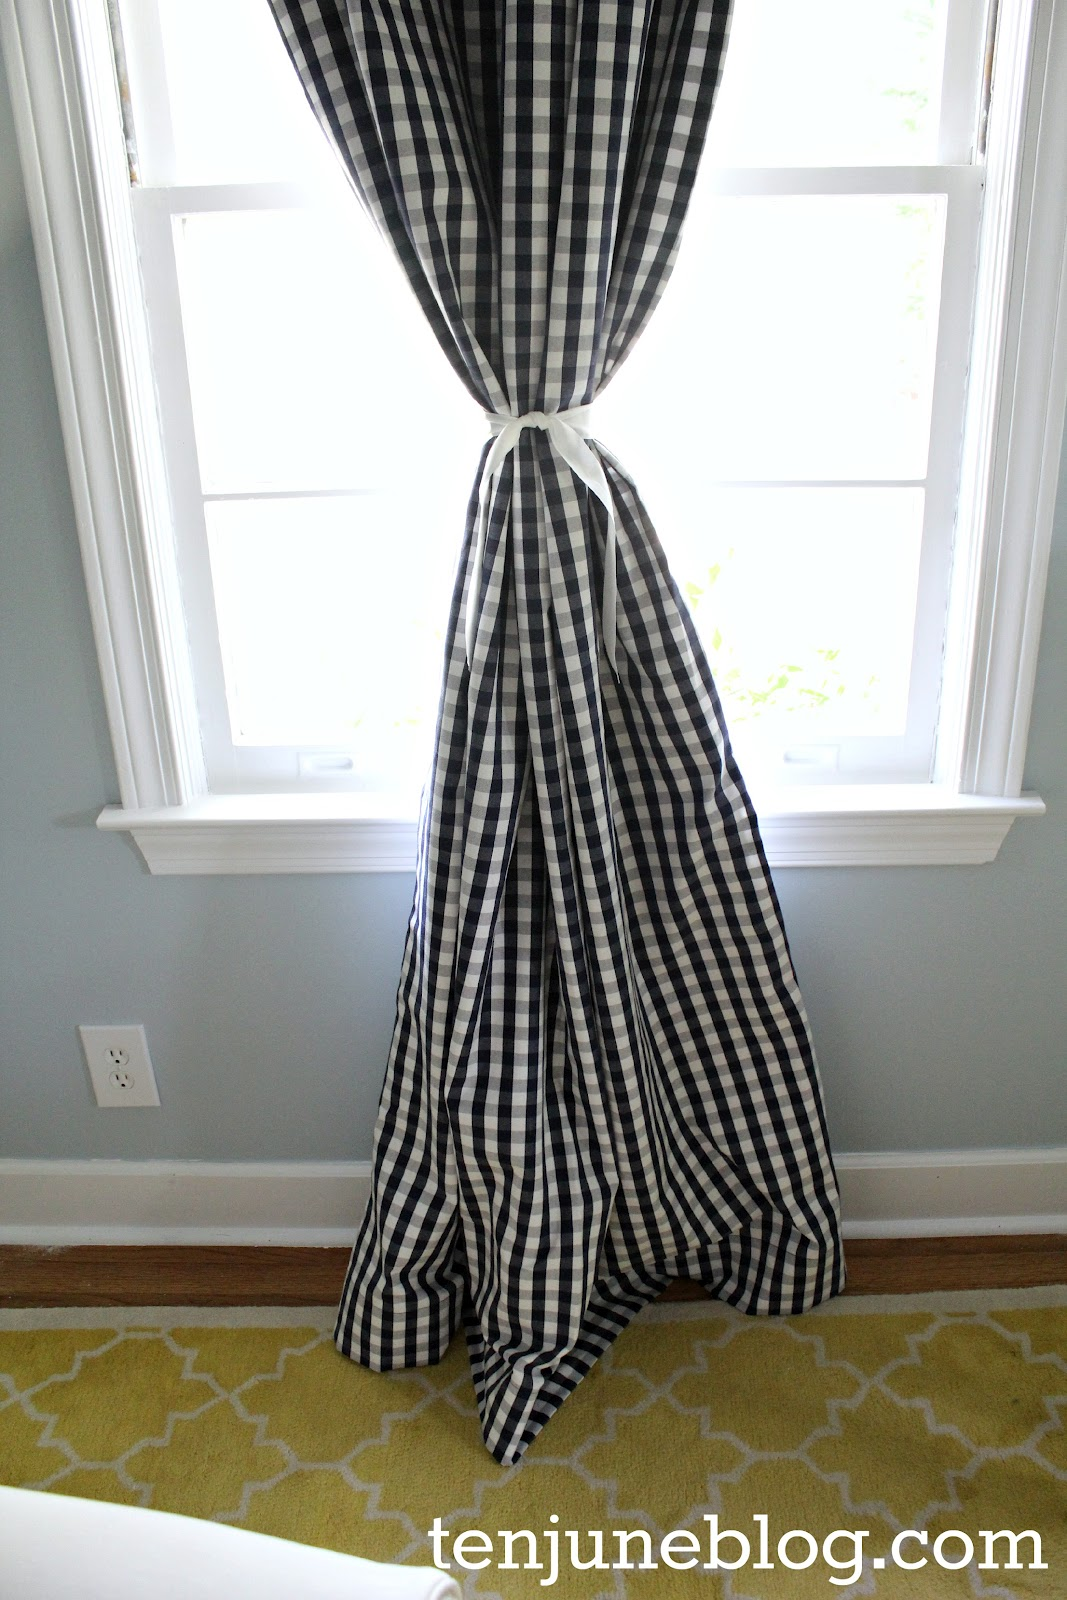 Ten June DIY Blackout Curtain Tutorial How to Make Awesome Nursery Curtains